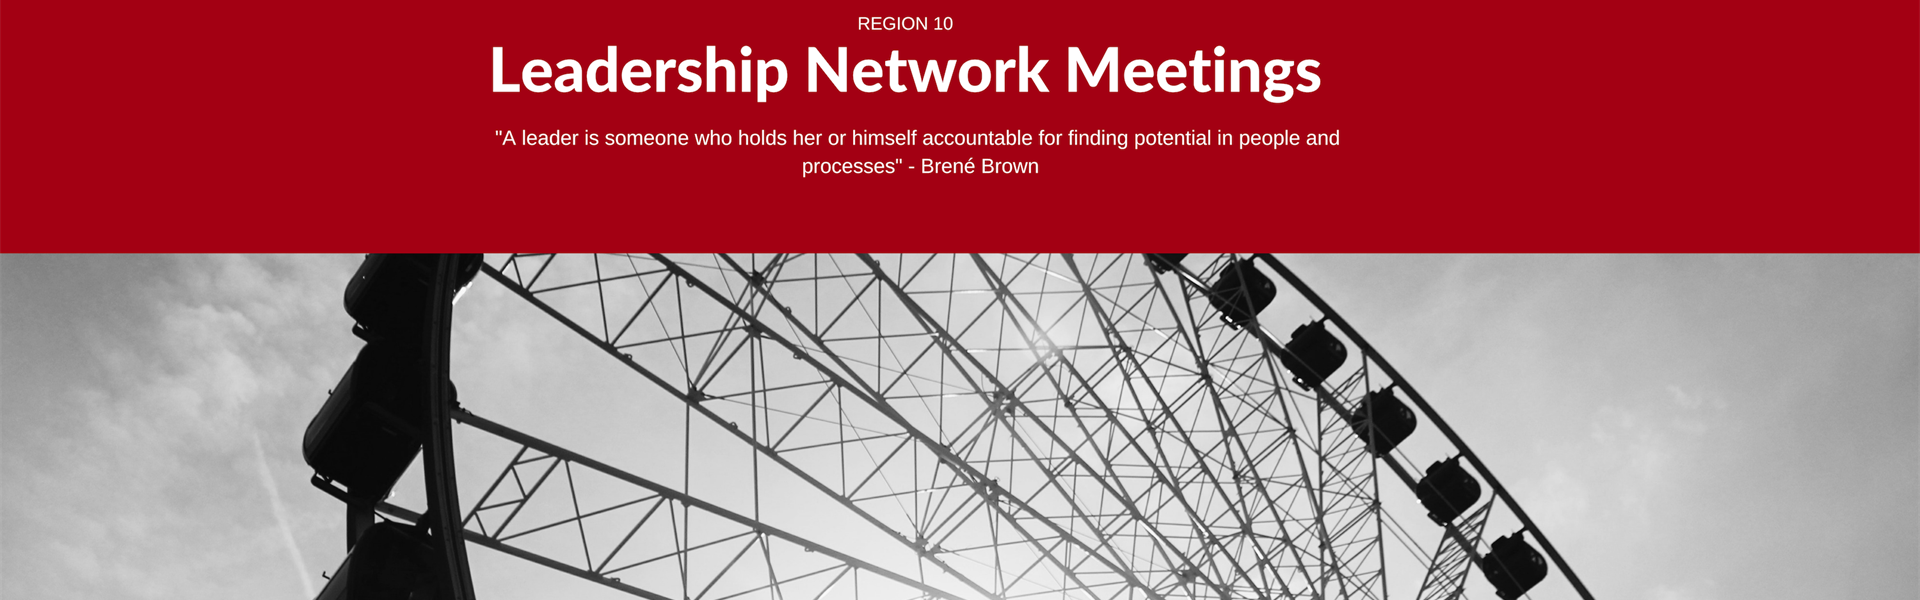 image of ferris wheel and the words Leadership Network